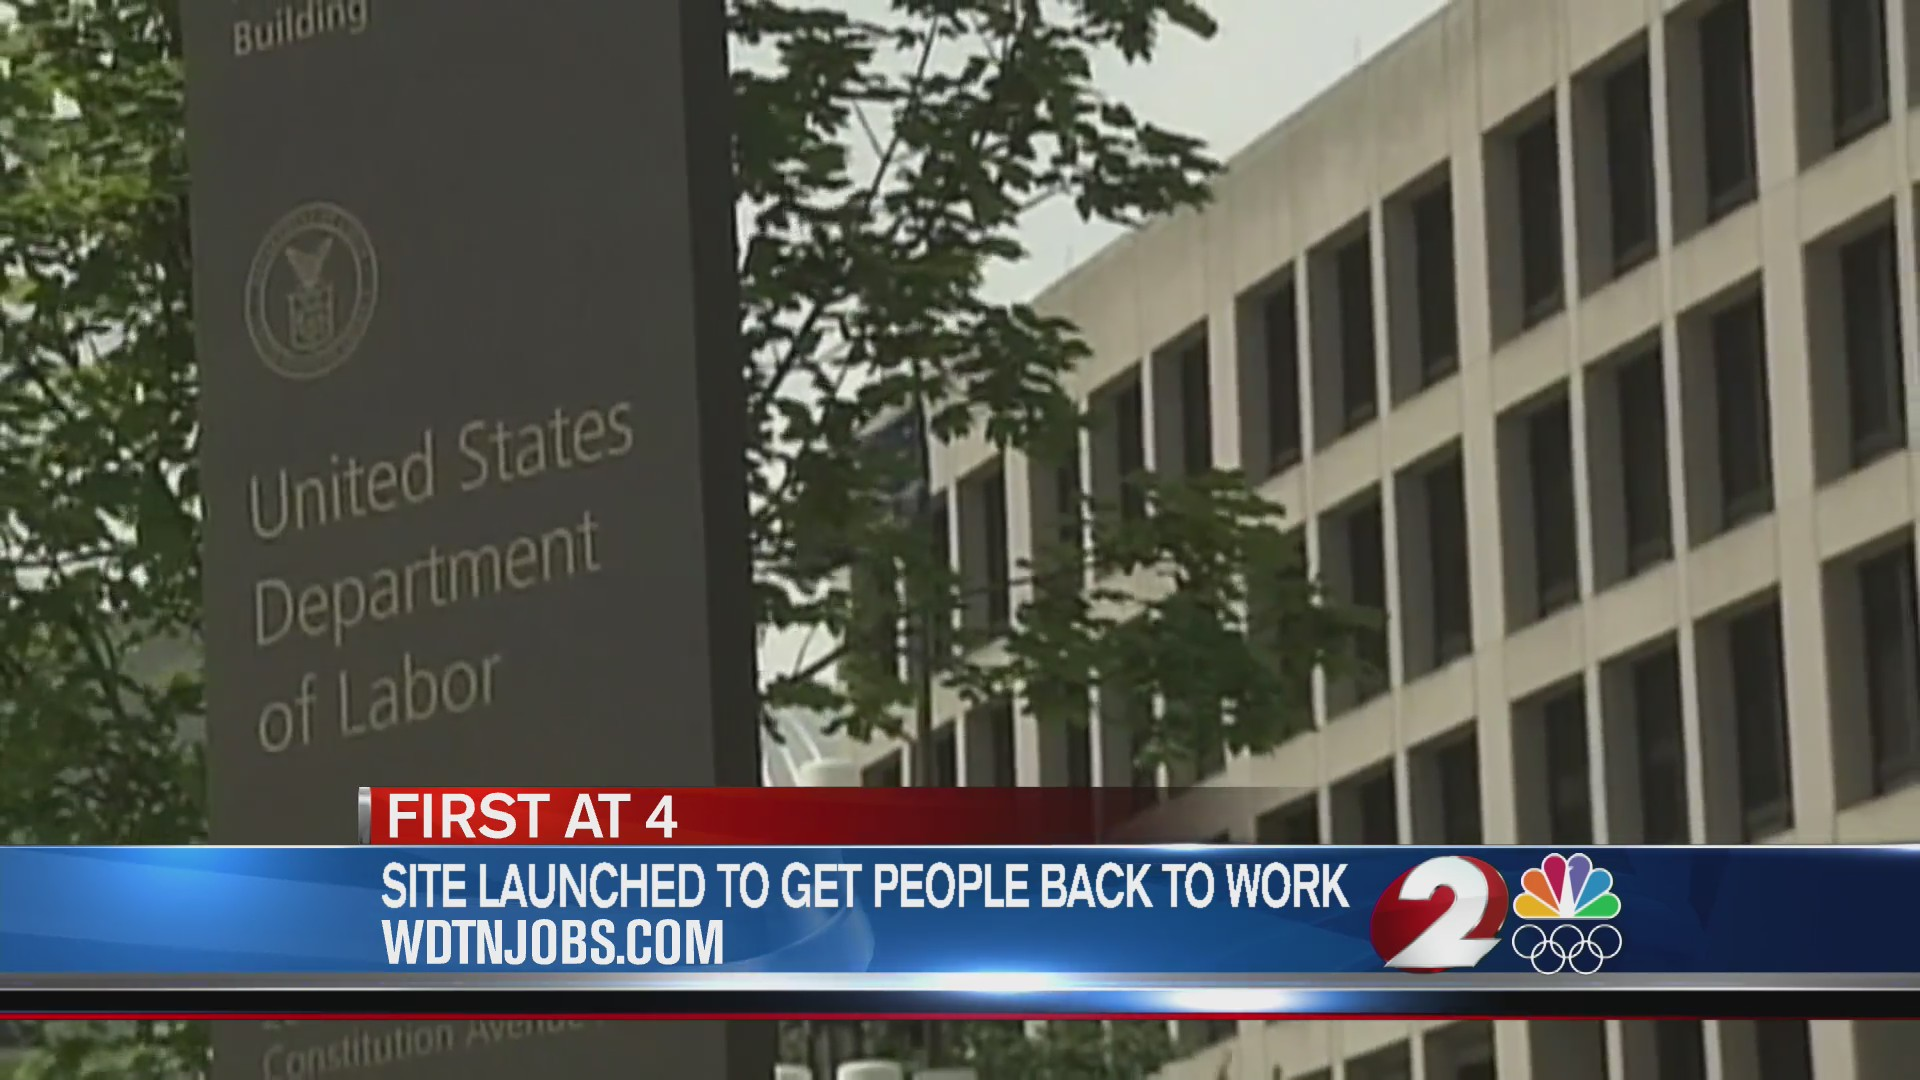 Site launched to help get people back to work